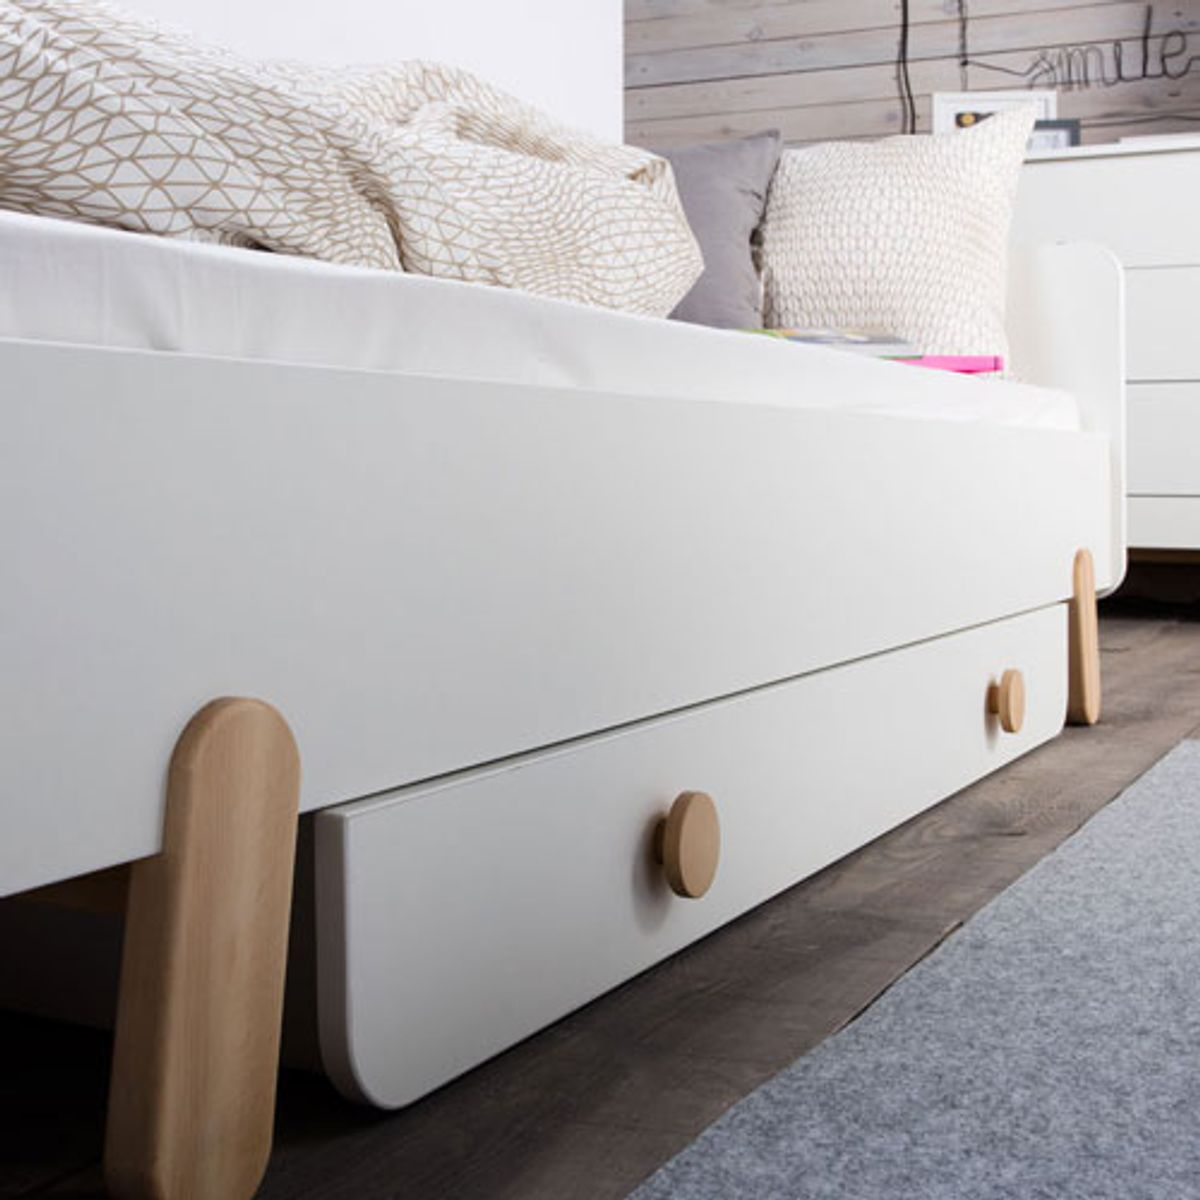 tiroir pour lit enfant 90x200 cm en bois blanc et naturel. Black Bedroom Furniture Sets. Home Design Ideas